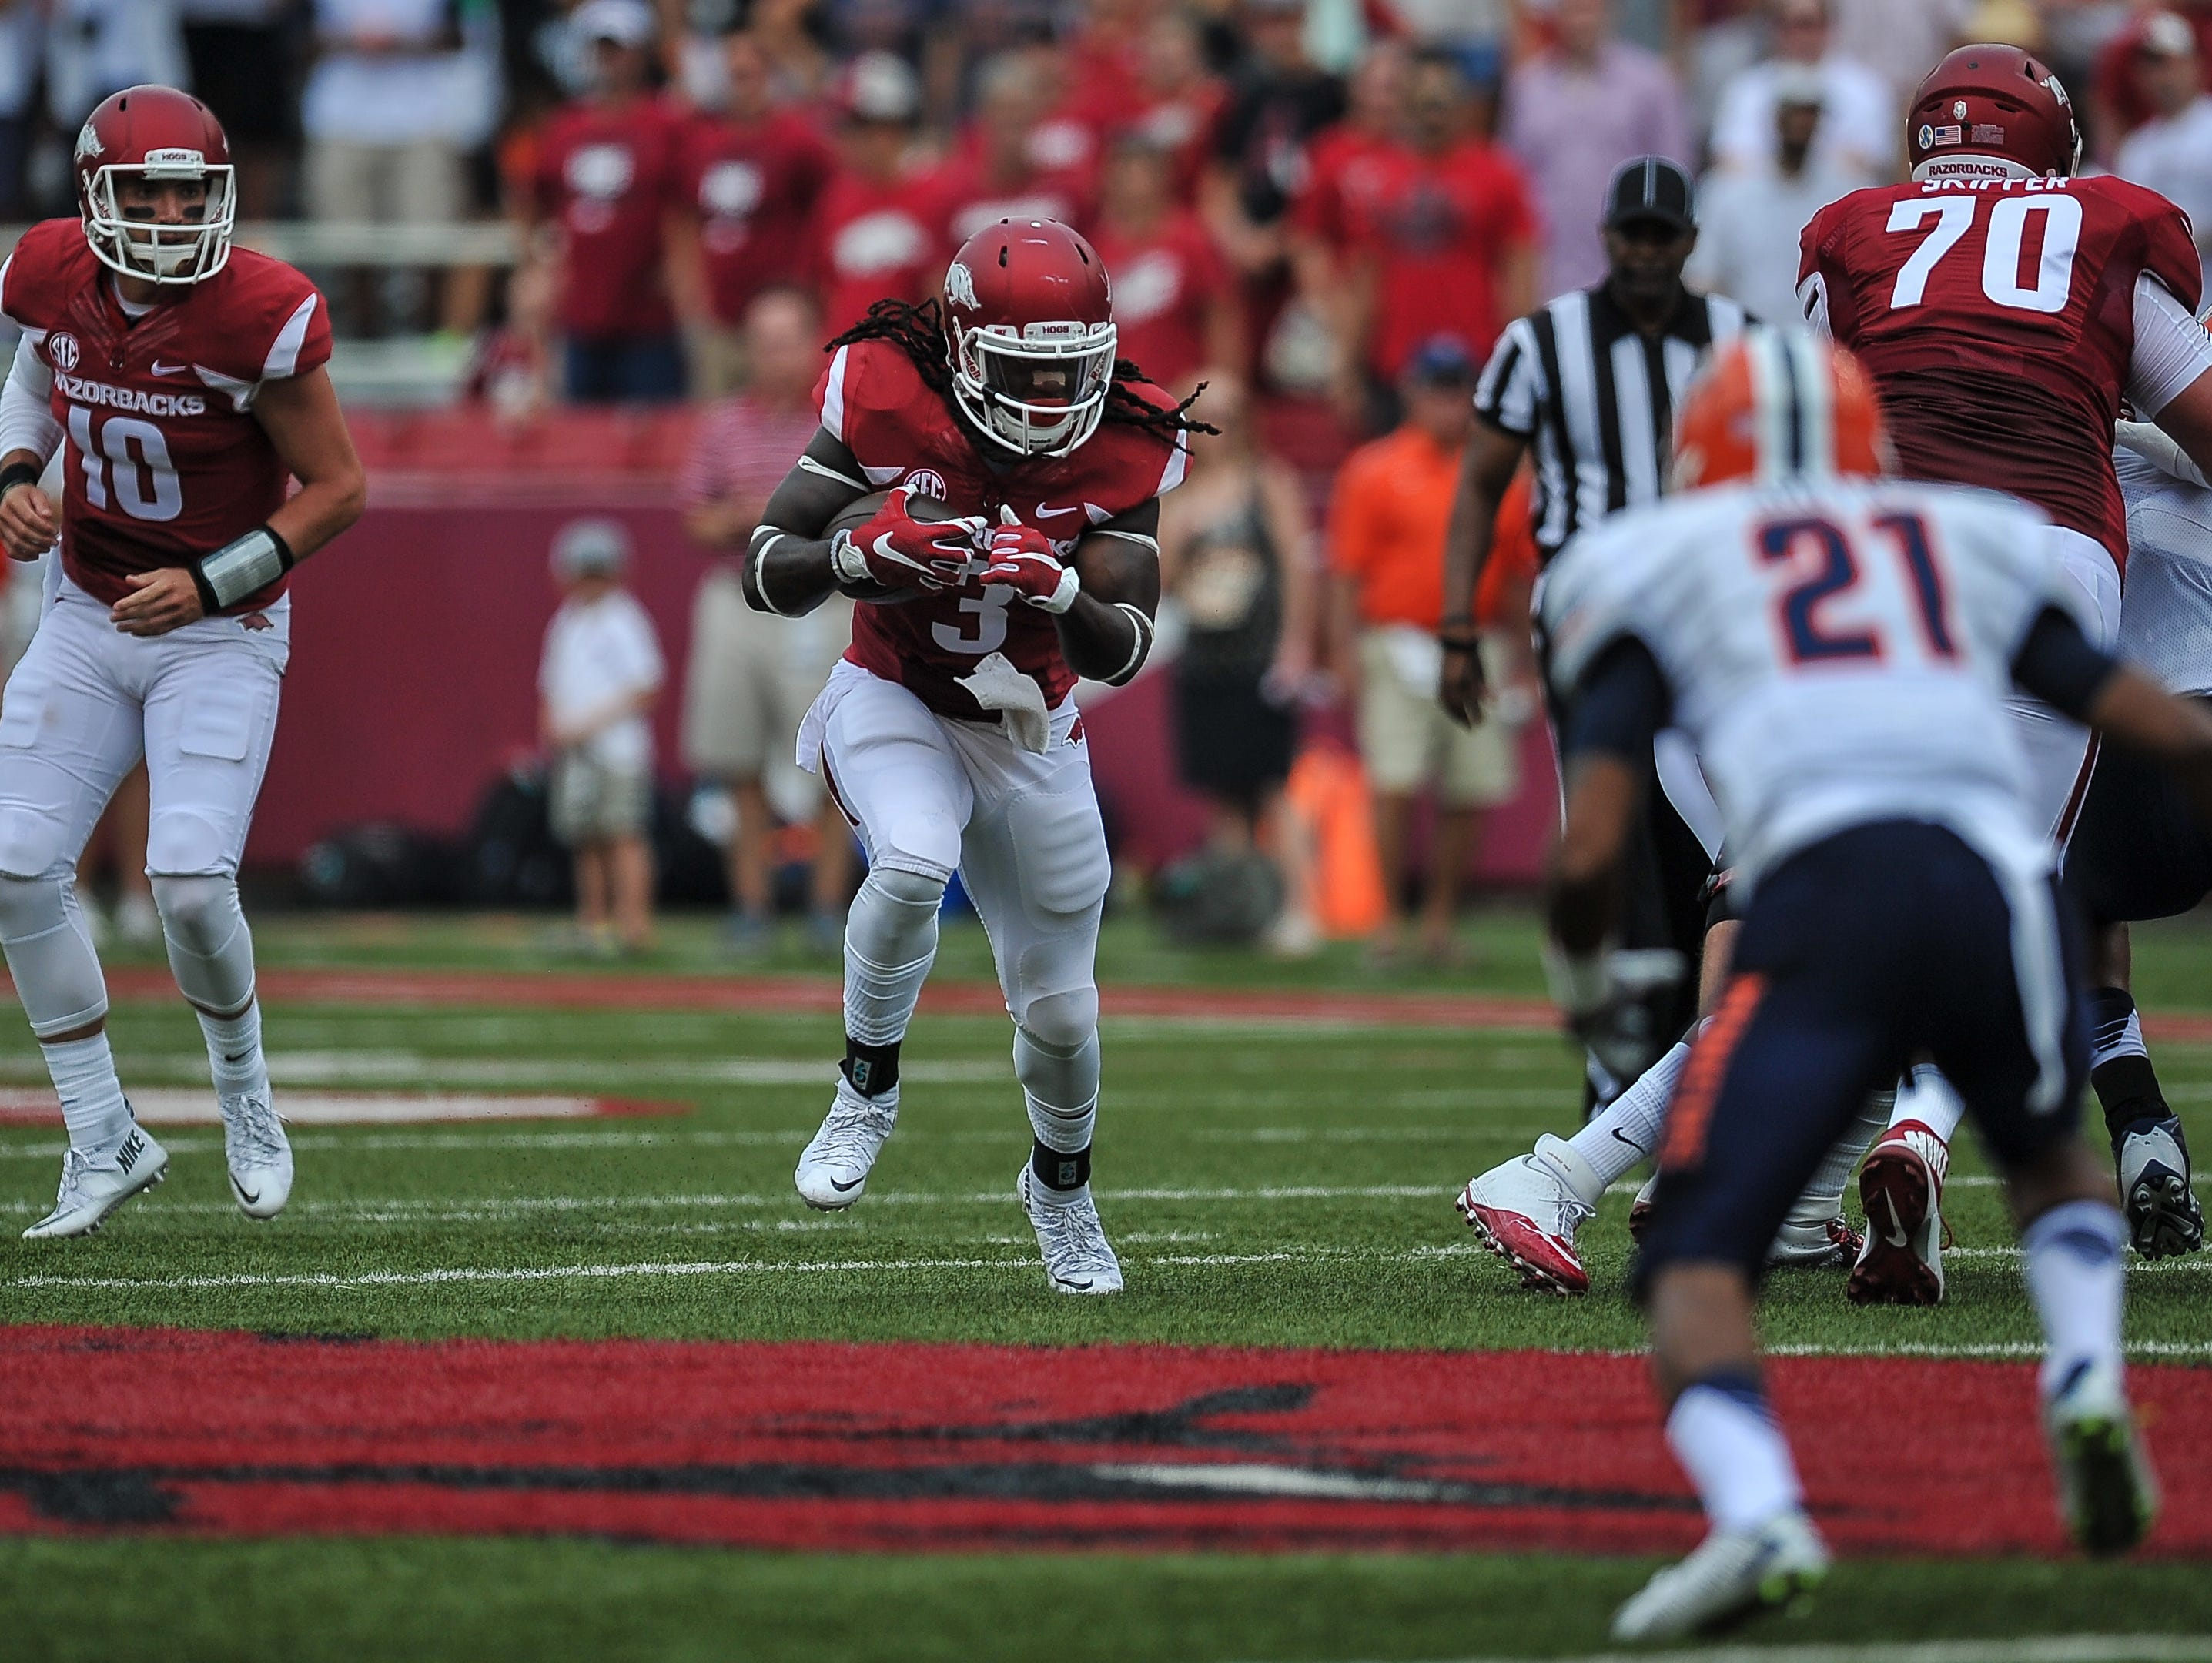 Arkansas Razorbacks running back Alex Collins (3) runs with the ball during a football game between the Arkansas Razorbacks and the UTEP Miners on Saturday, September 5, 2015 at the Donald W. Reynolds Razorback Stadium in Fayetteville, Arkansas. Arkansas won the game 48-13.